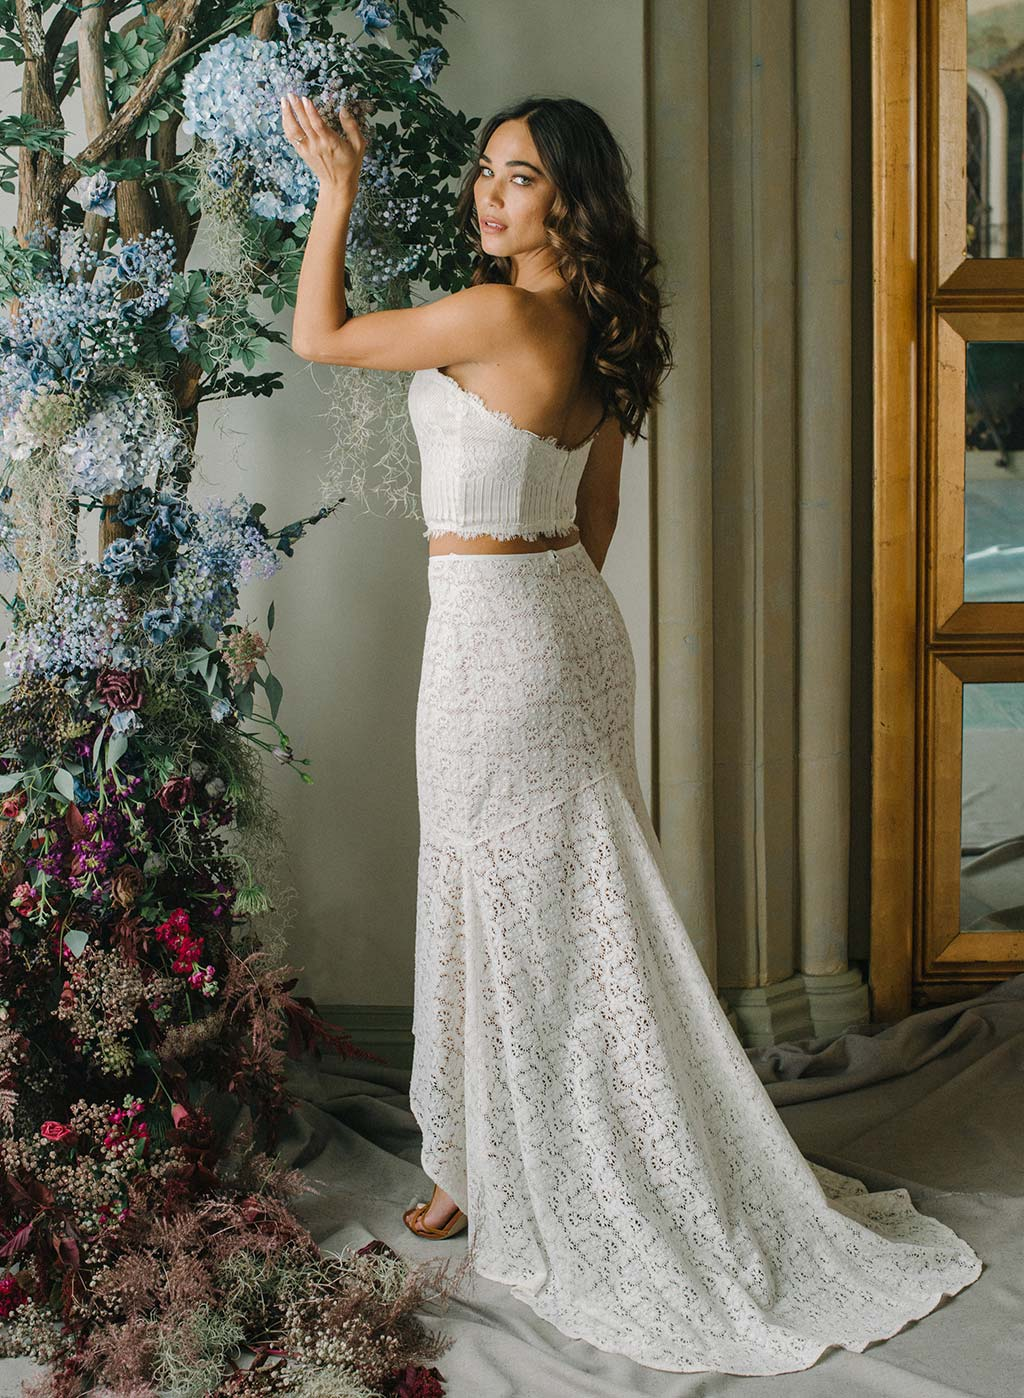 Lola Bridal Ready to Wed Full Lace Skirt with Train